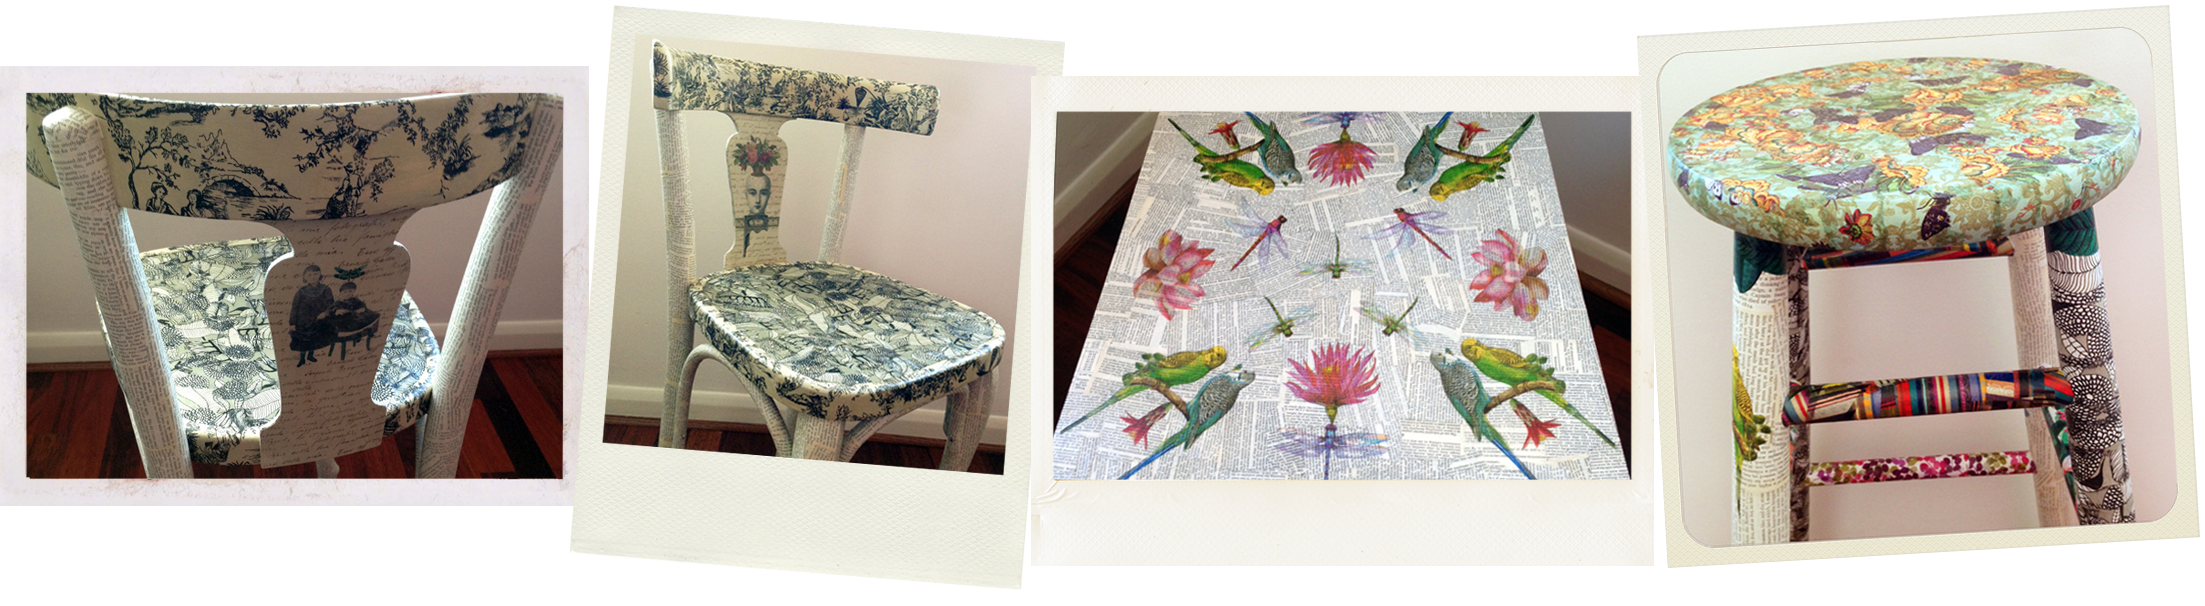 decoupaged chairs and stool